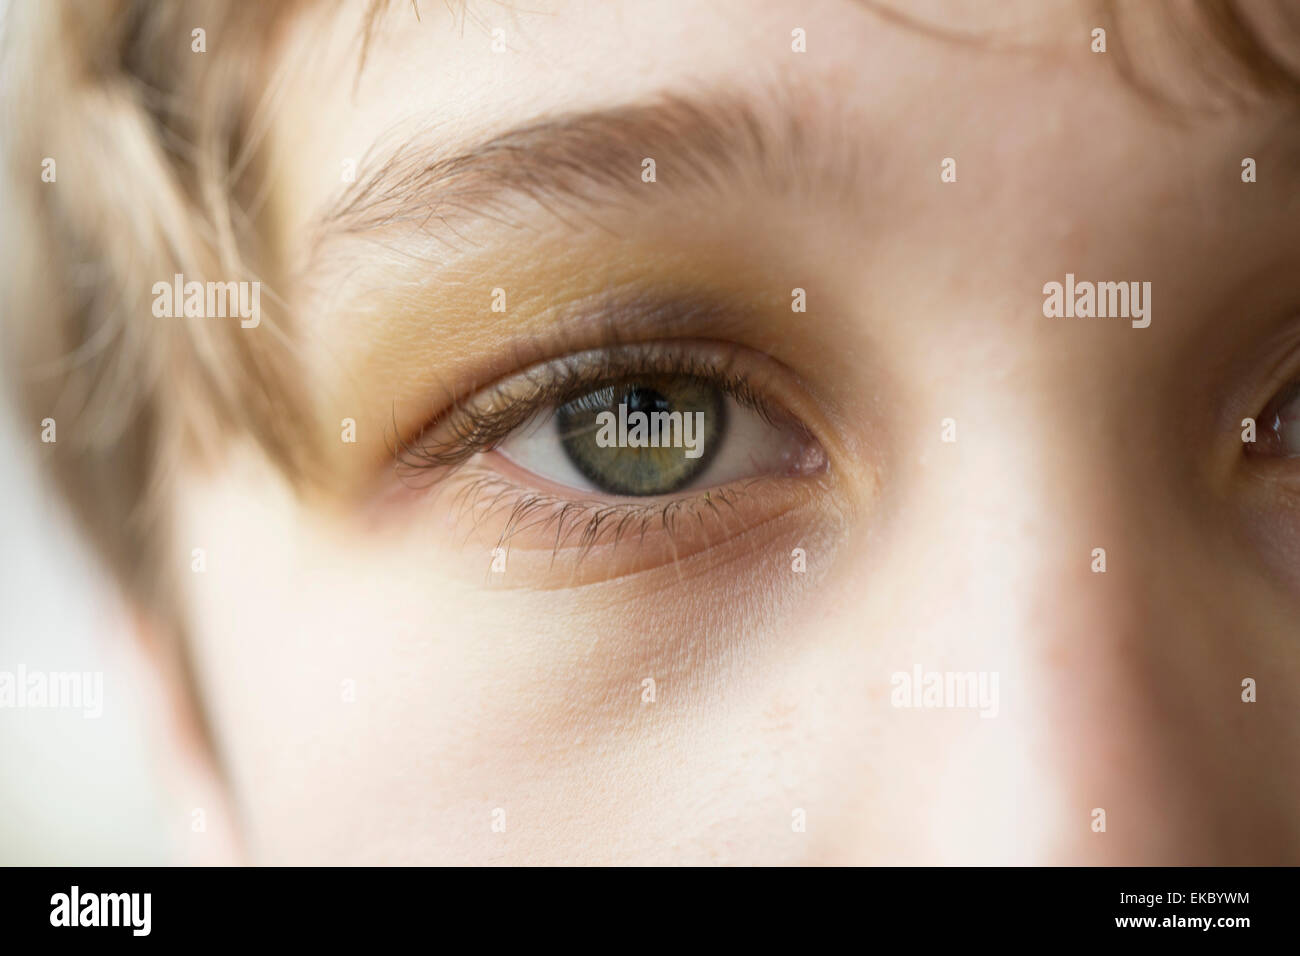 Close up of boy's eye Photo Stock